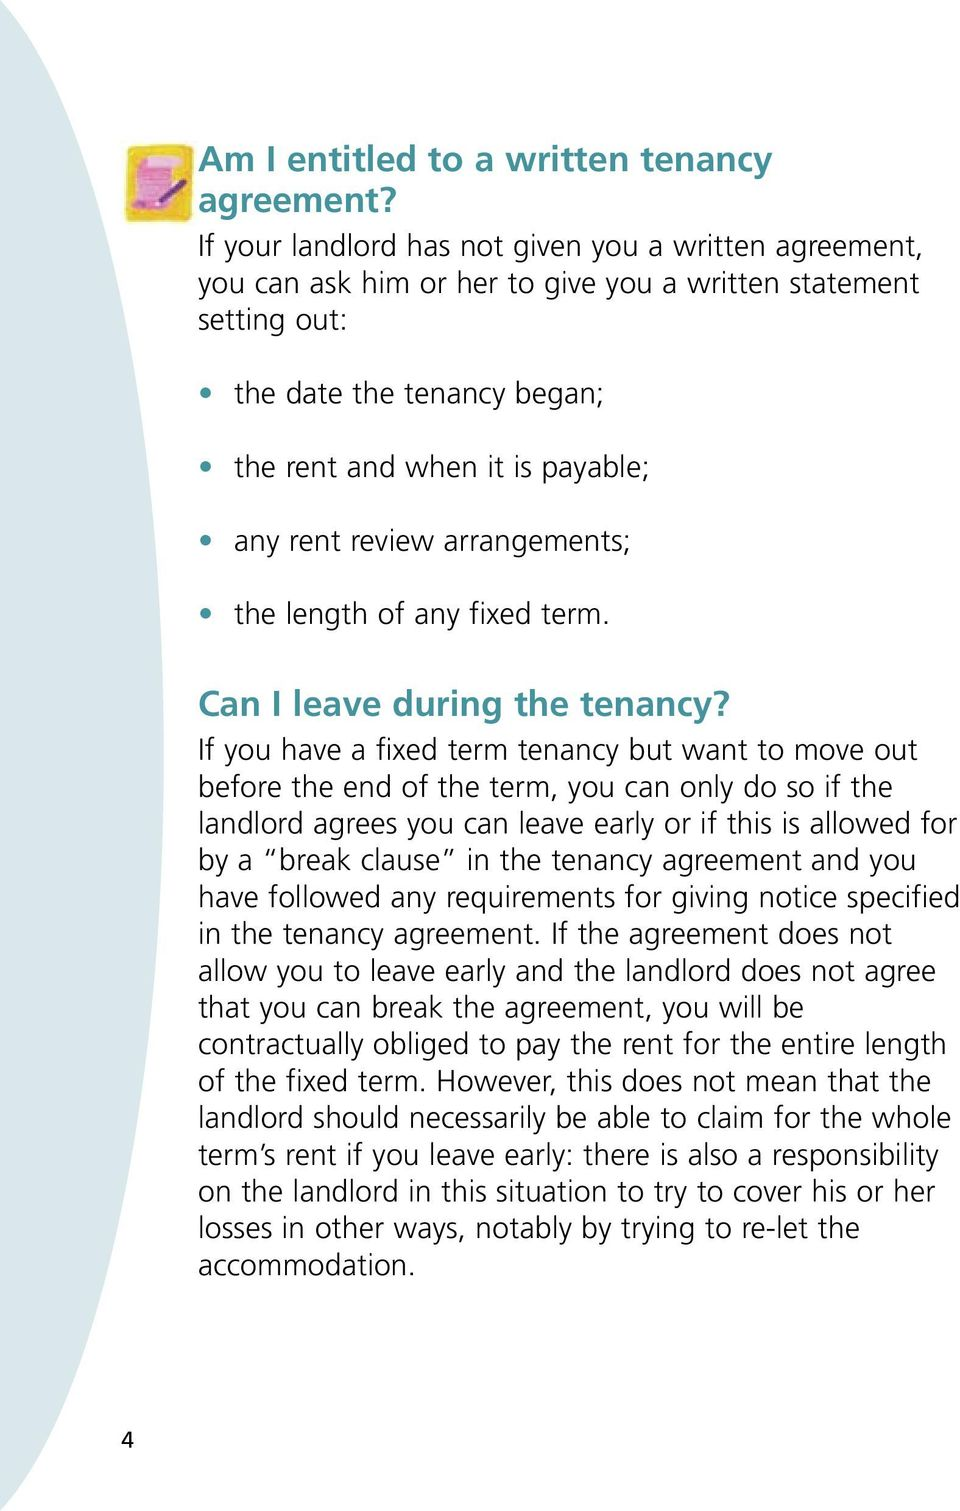 review arrangements; the length of any fixed term. Can I leave during the tenancy?